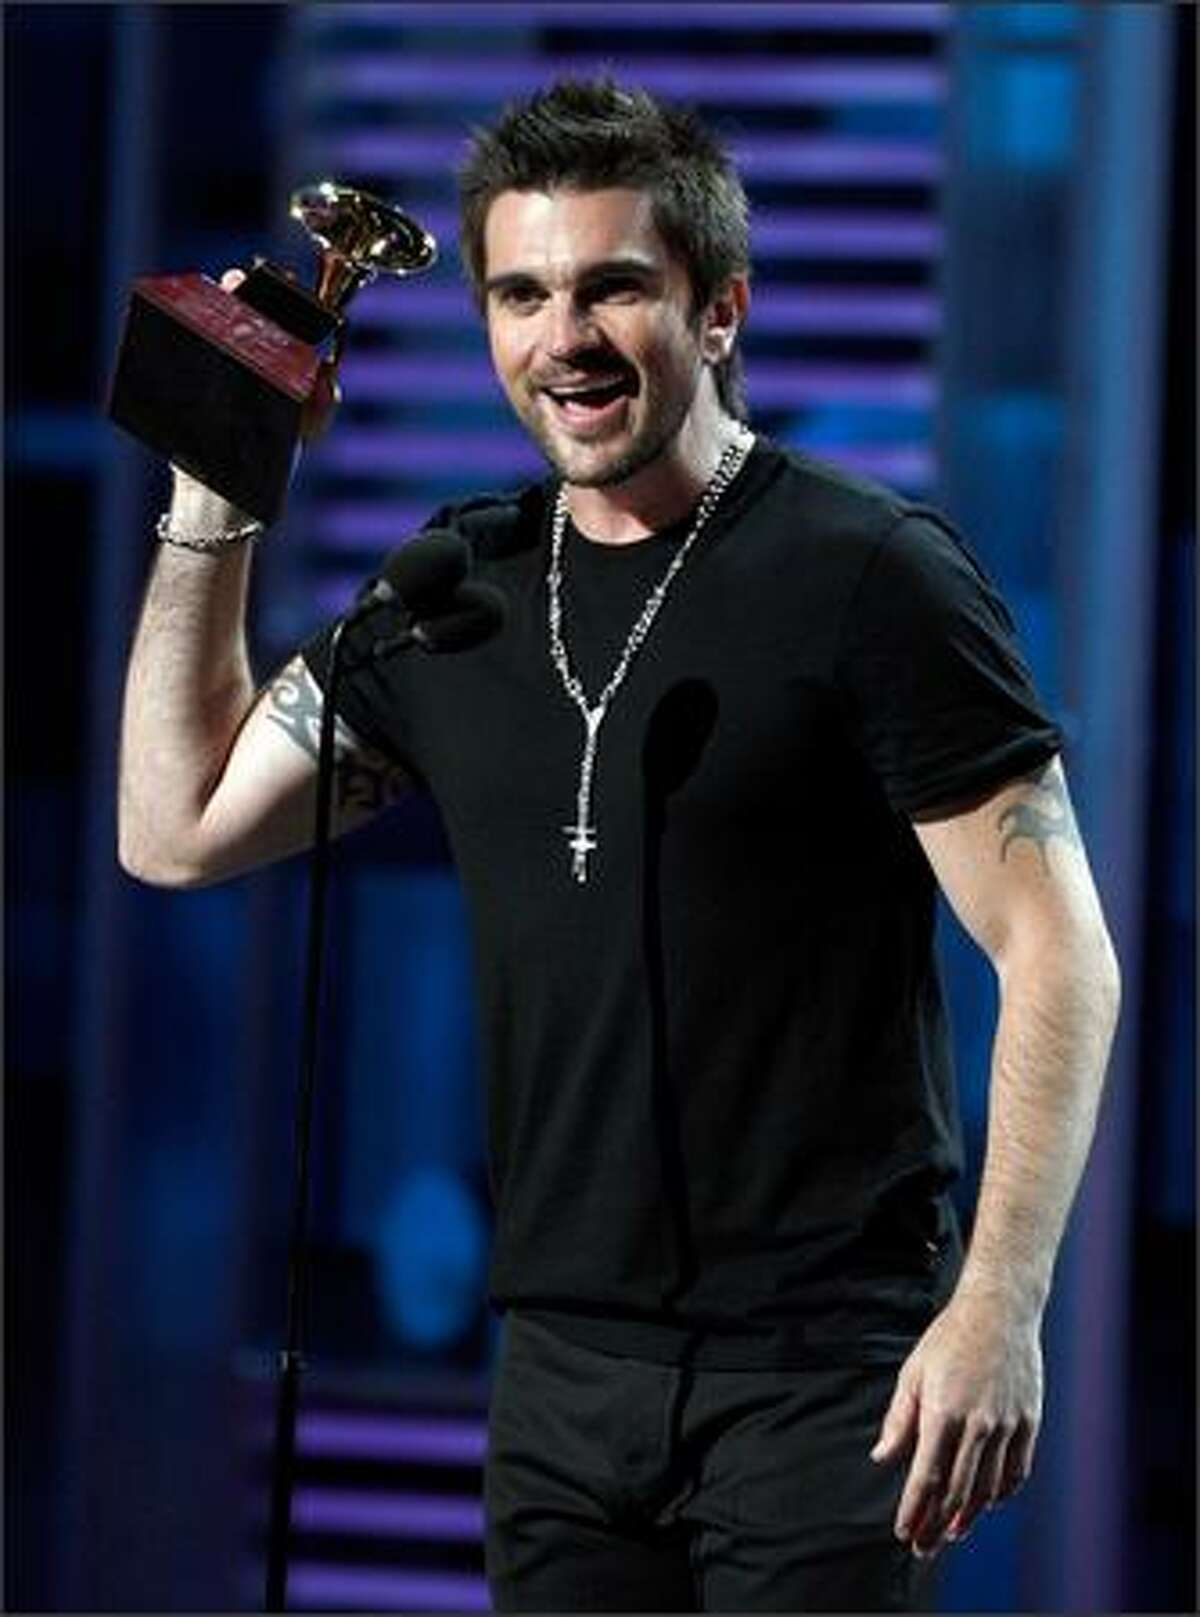 Singer Juanes accepts the Best Male Pop Vocal Album award. He also took home awards for Record of the Year, Song of the Year, Album of the Year and Best Short Form Music Video.